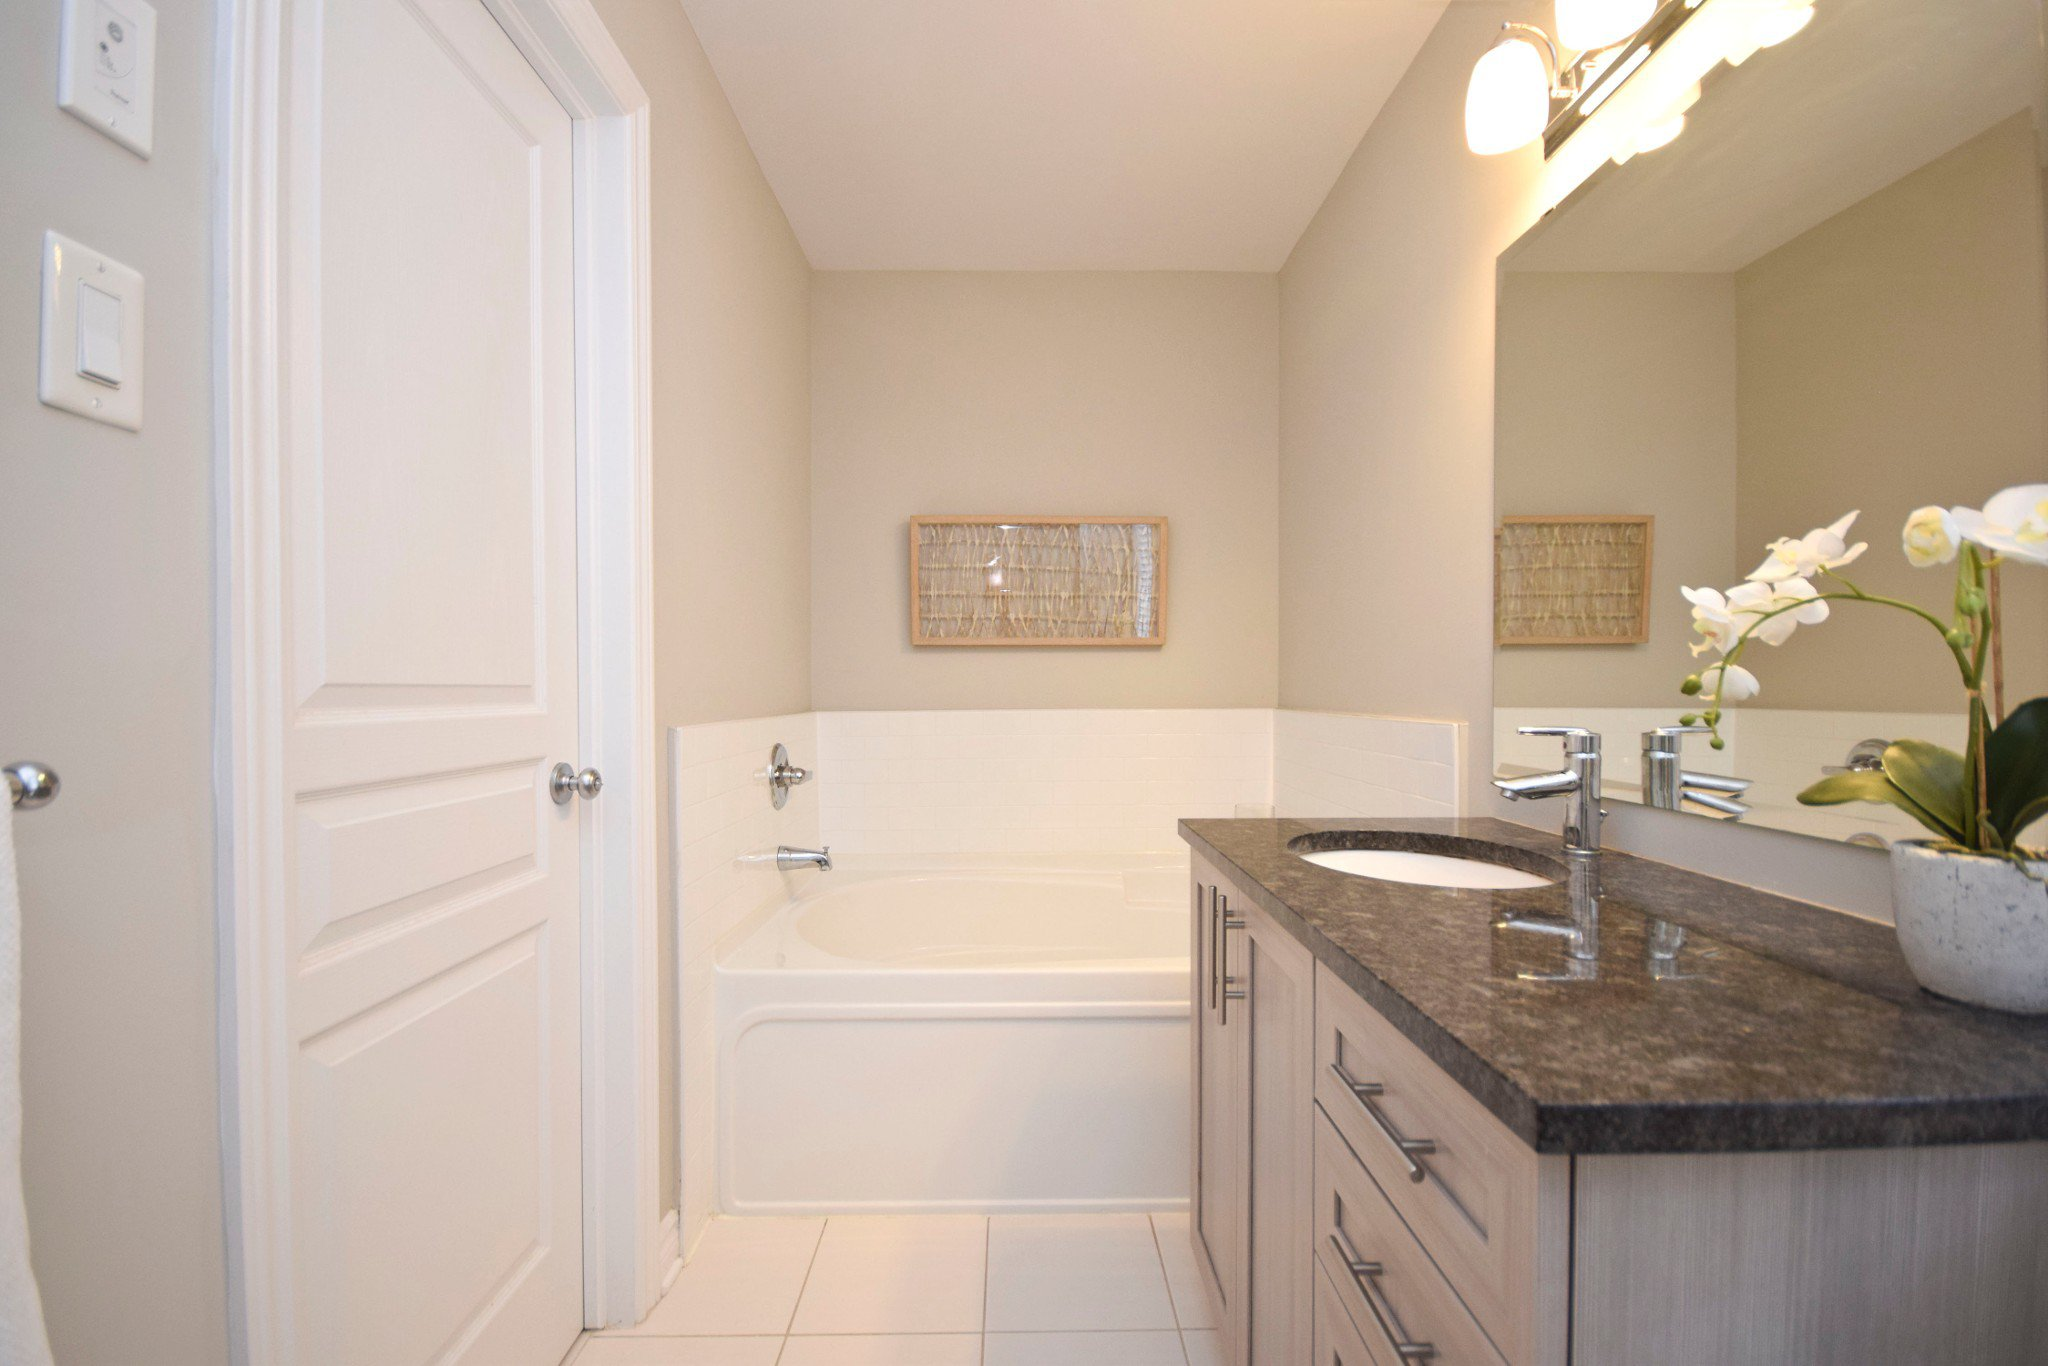 Photo 45: Photos: 131 Popplewell Crescent in Ottawa: Cedargrove / Fraserdale House for sale (Barrhaven)  : MLS®# 1130335